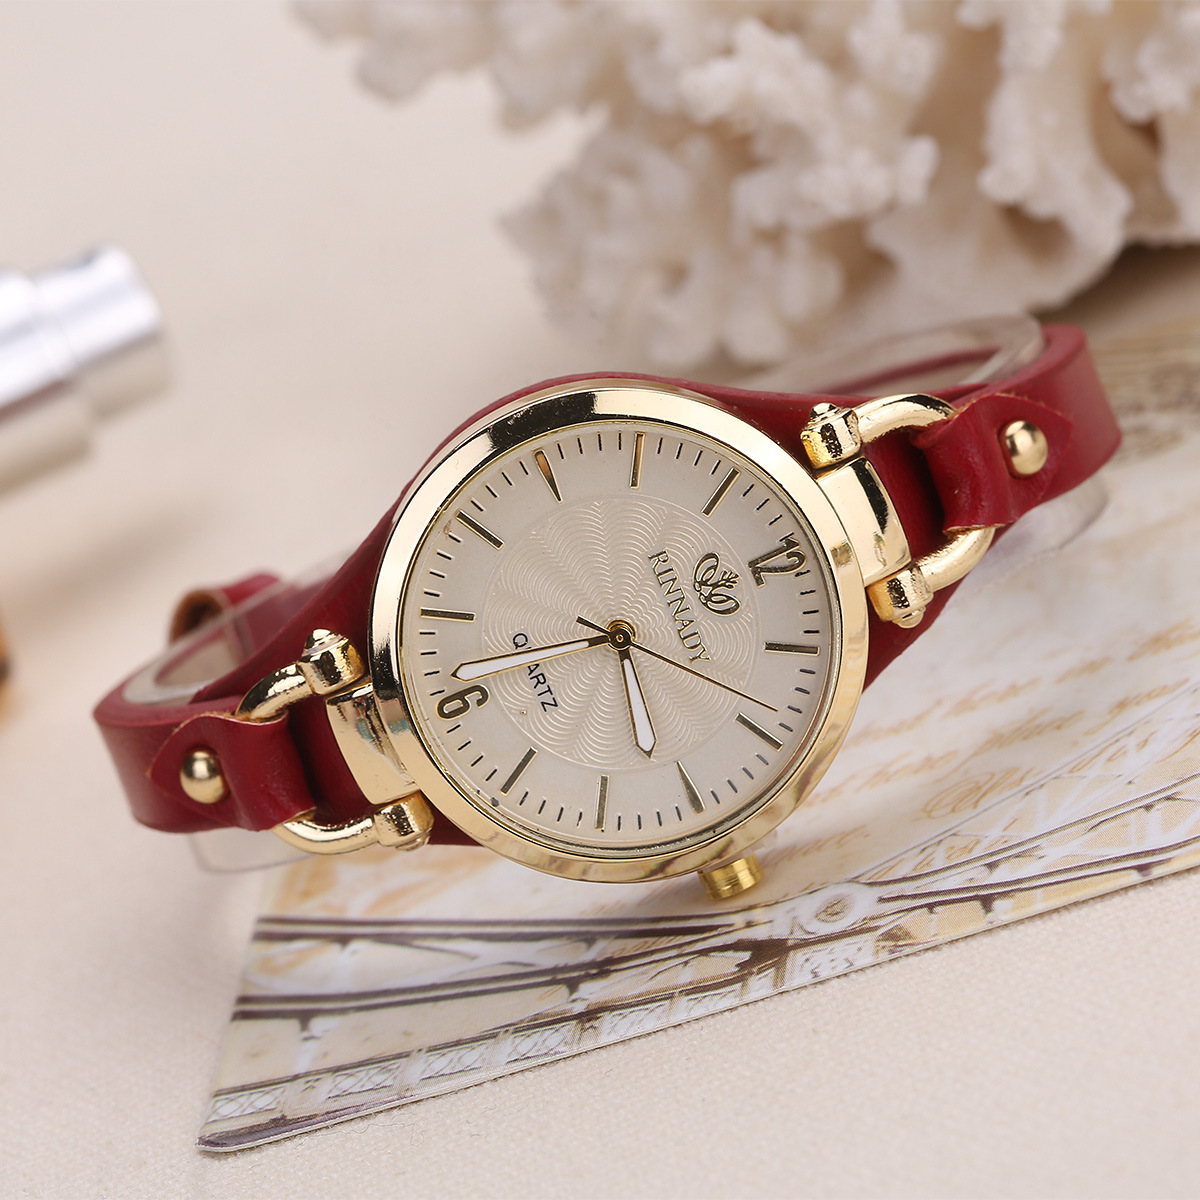 fashion Watch (brown)NHHK0750-brown